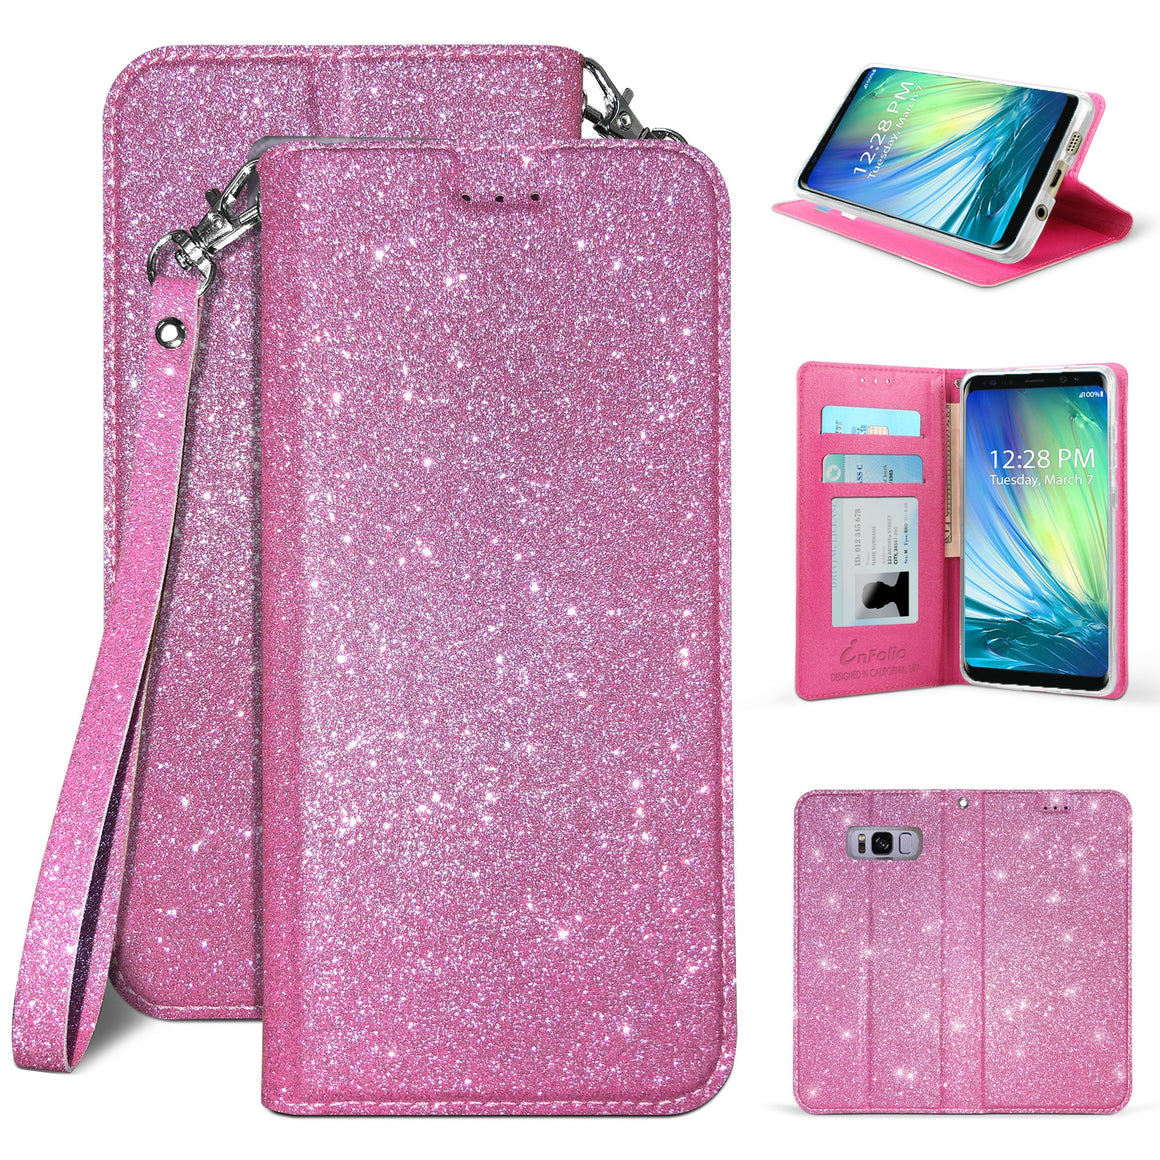 Infolio B For Samsung Galaxy S8 SM-950 Hot Pink